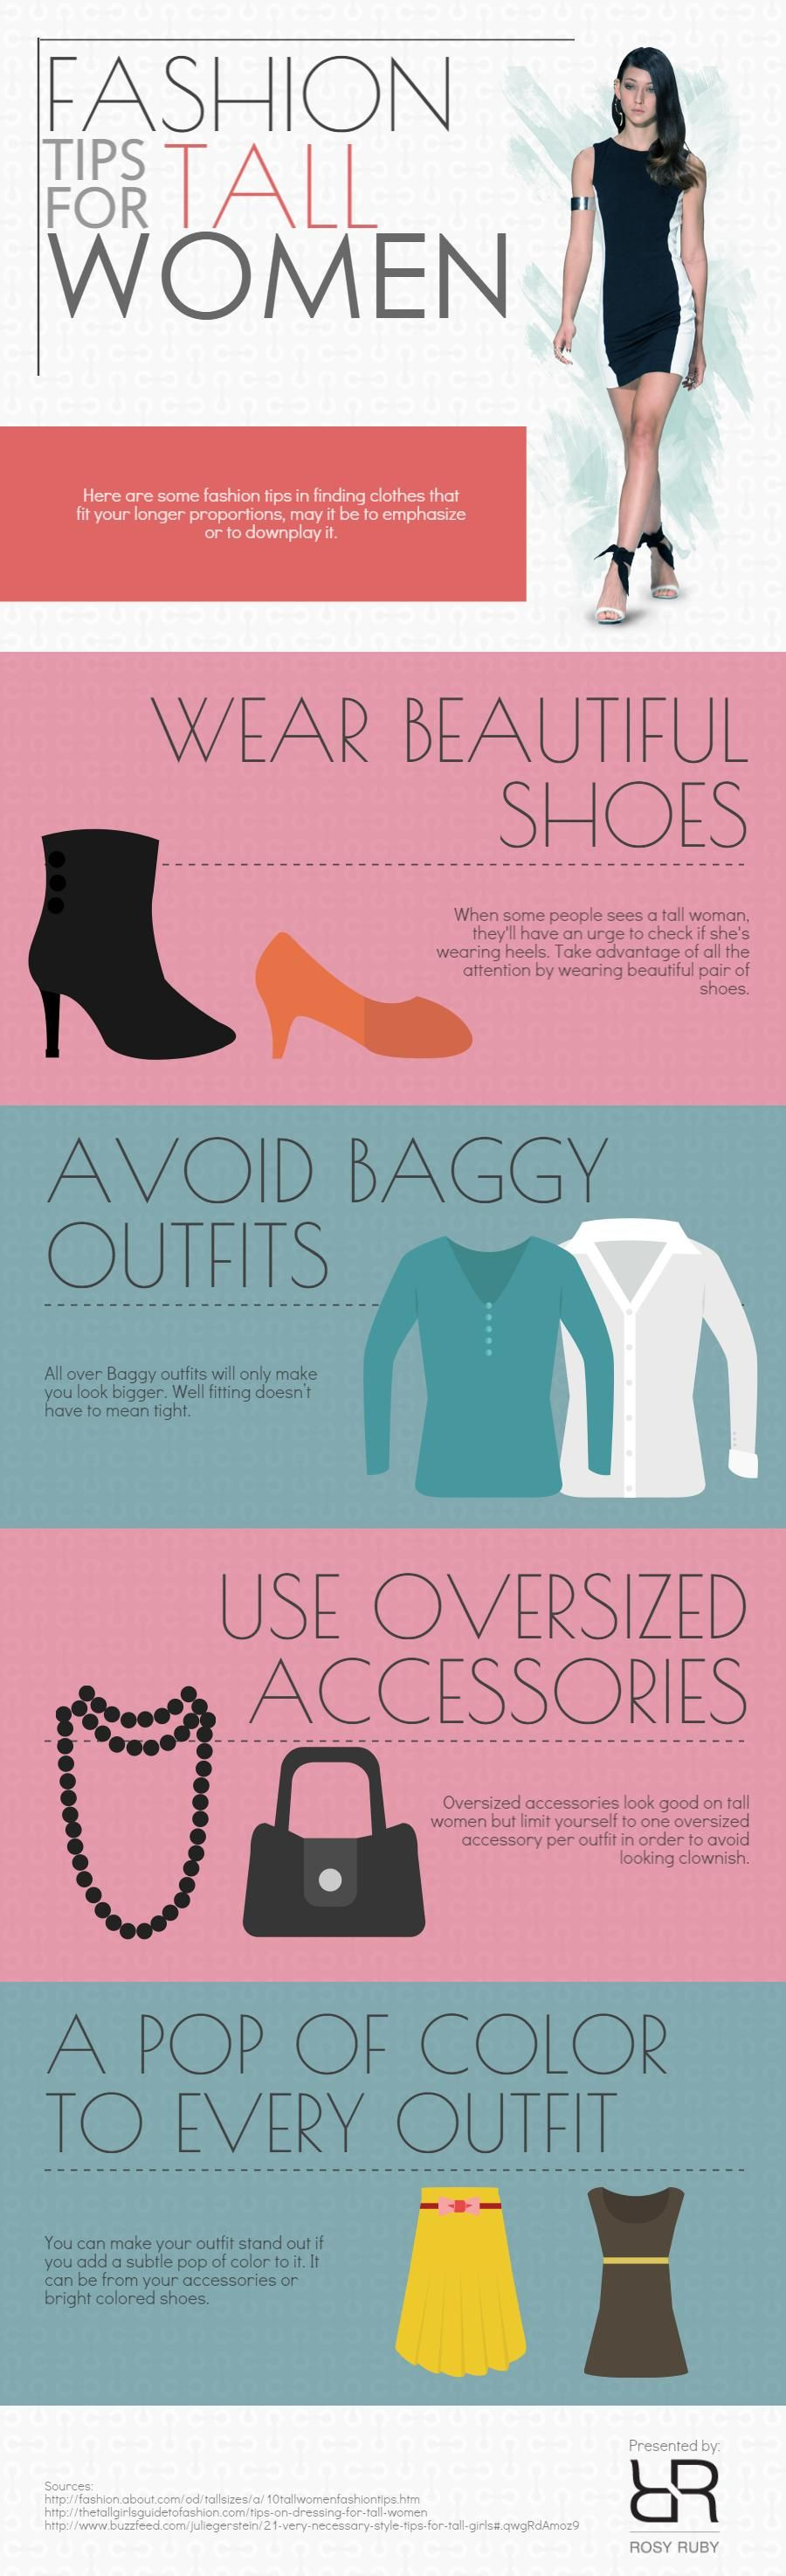 Fashion Tips for Tall Women